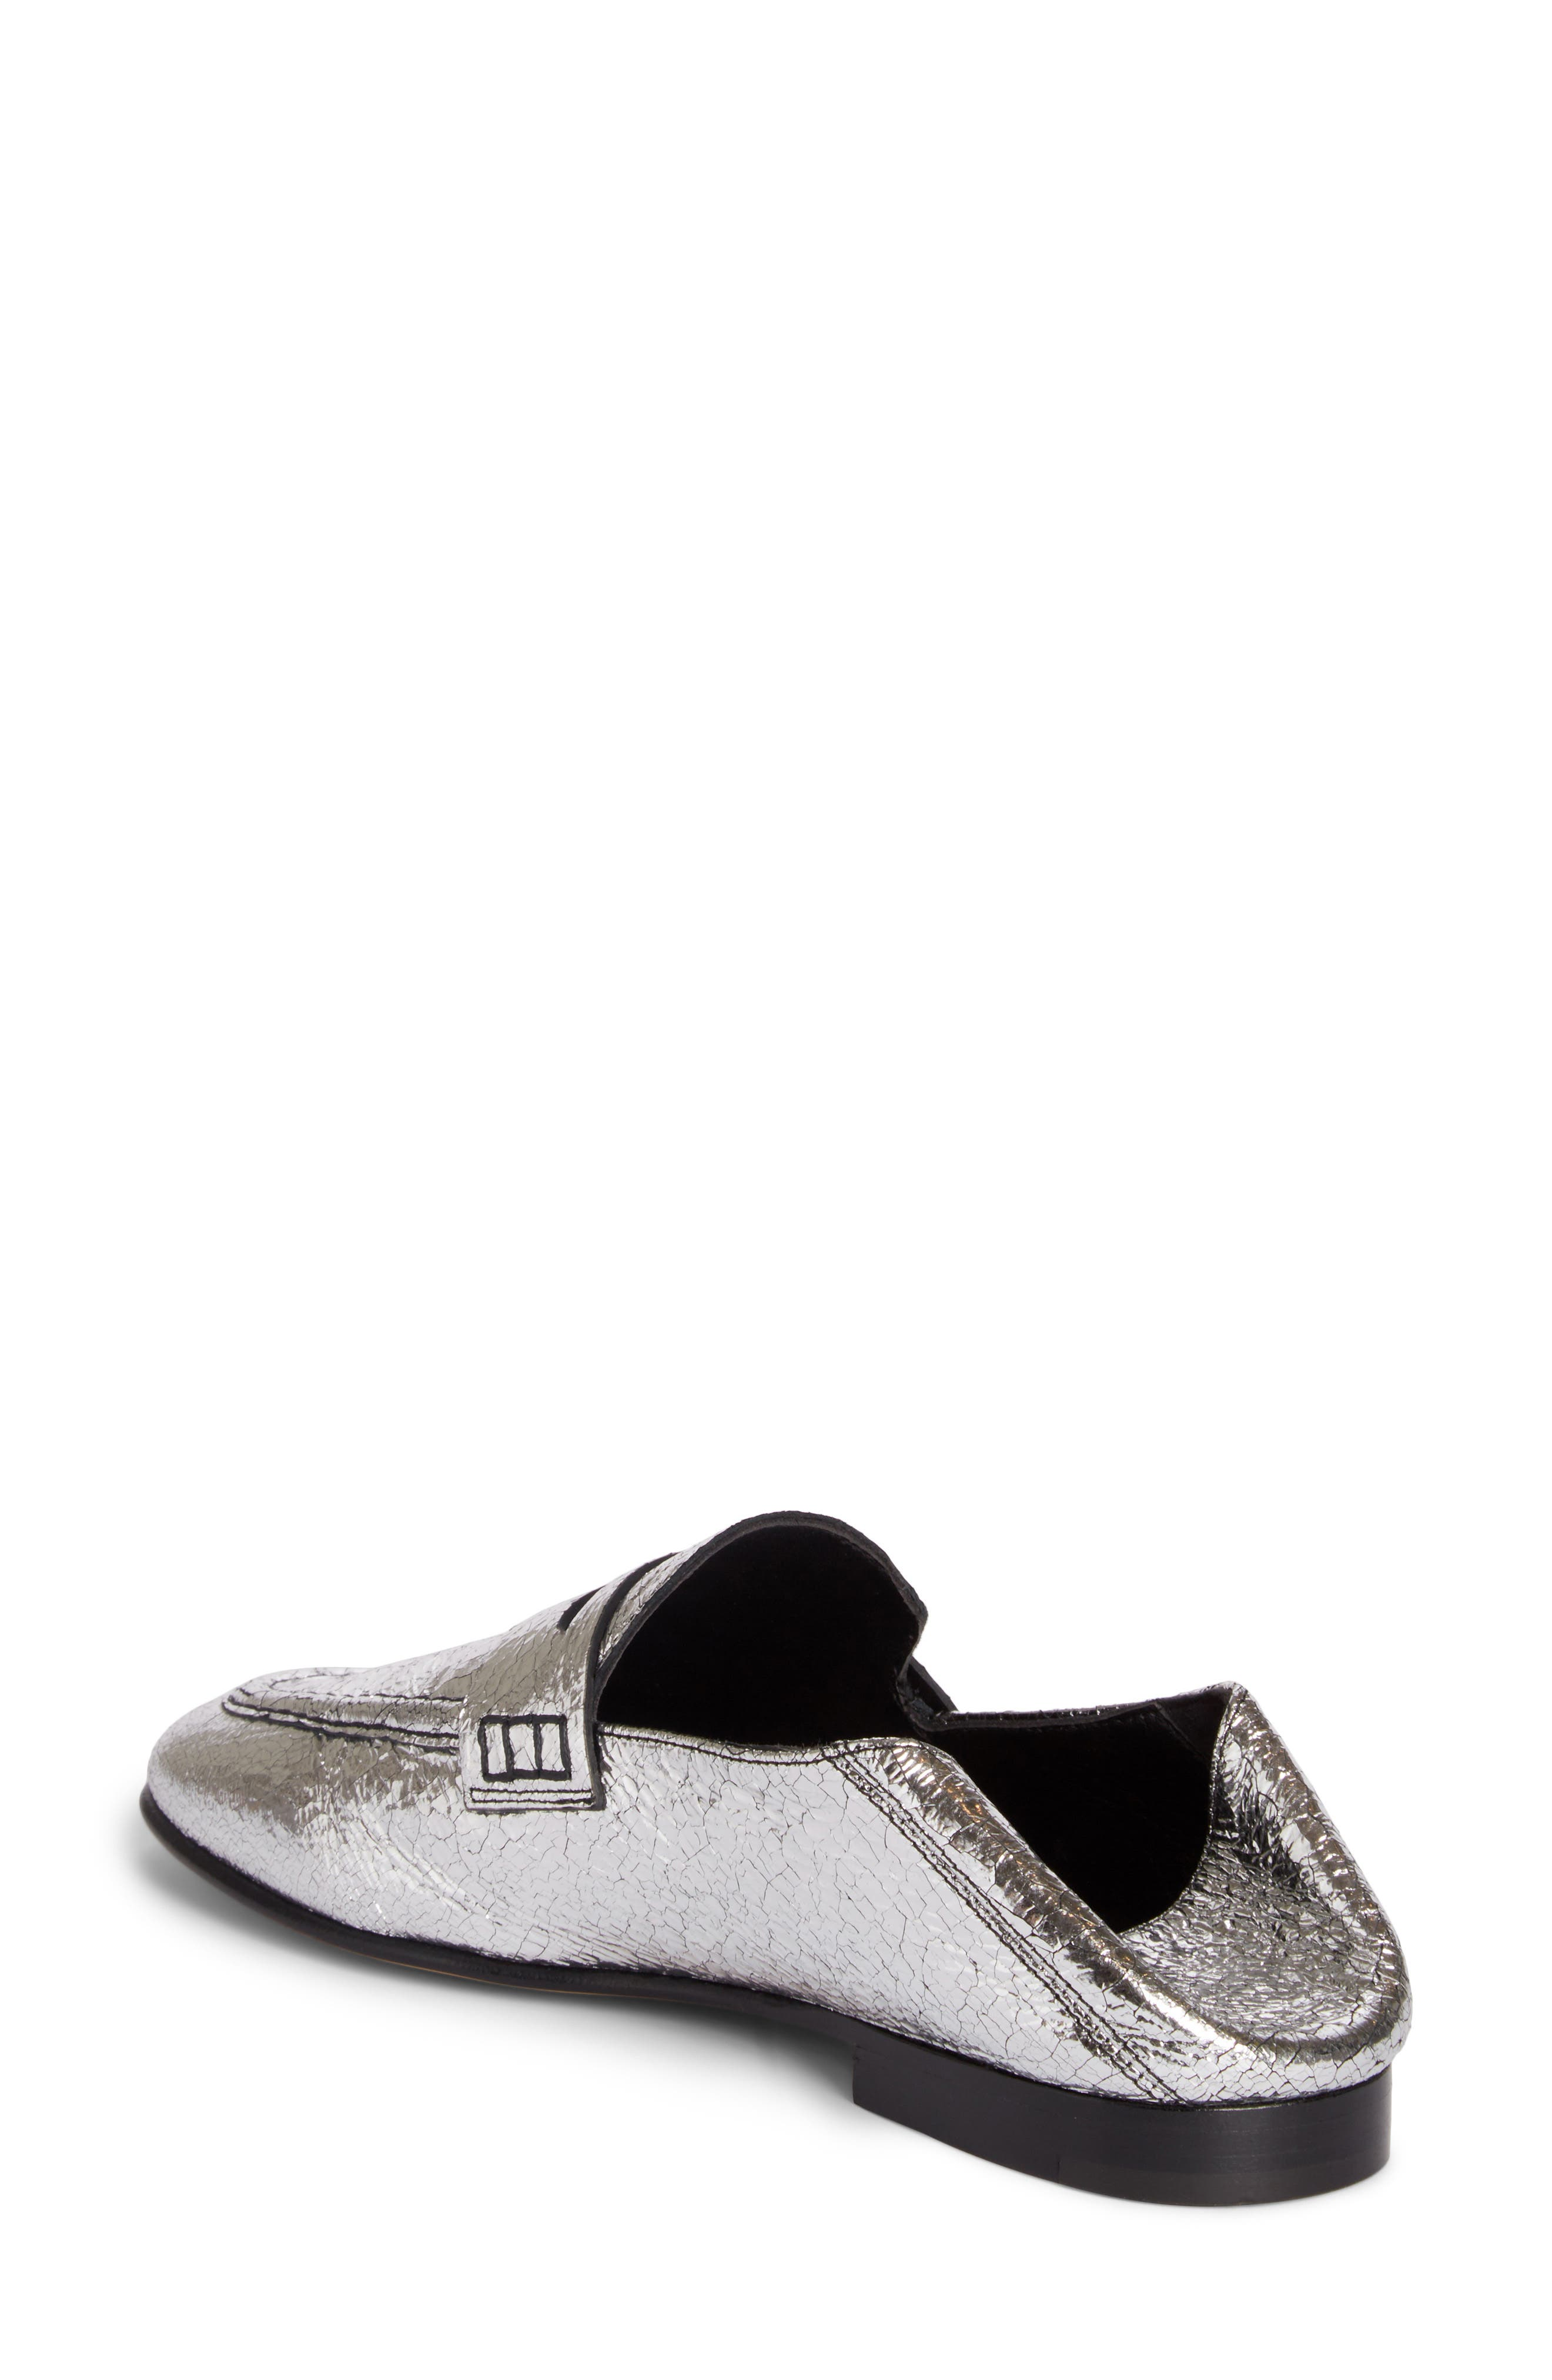 Fezzy Convertible Loafer,                             Alternate thumbnail 2, color,                             045